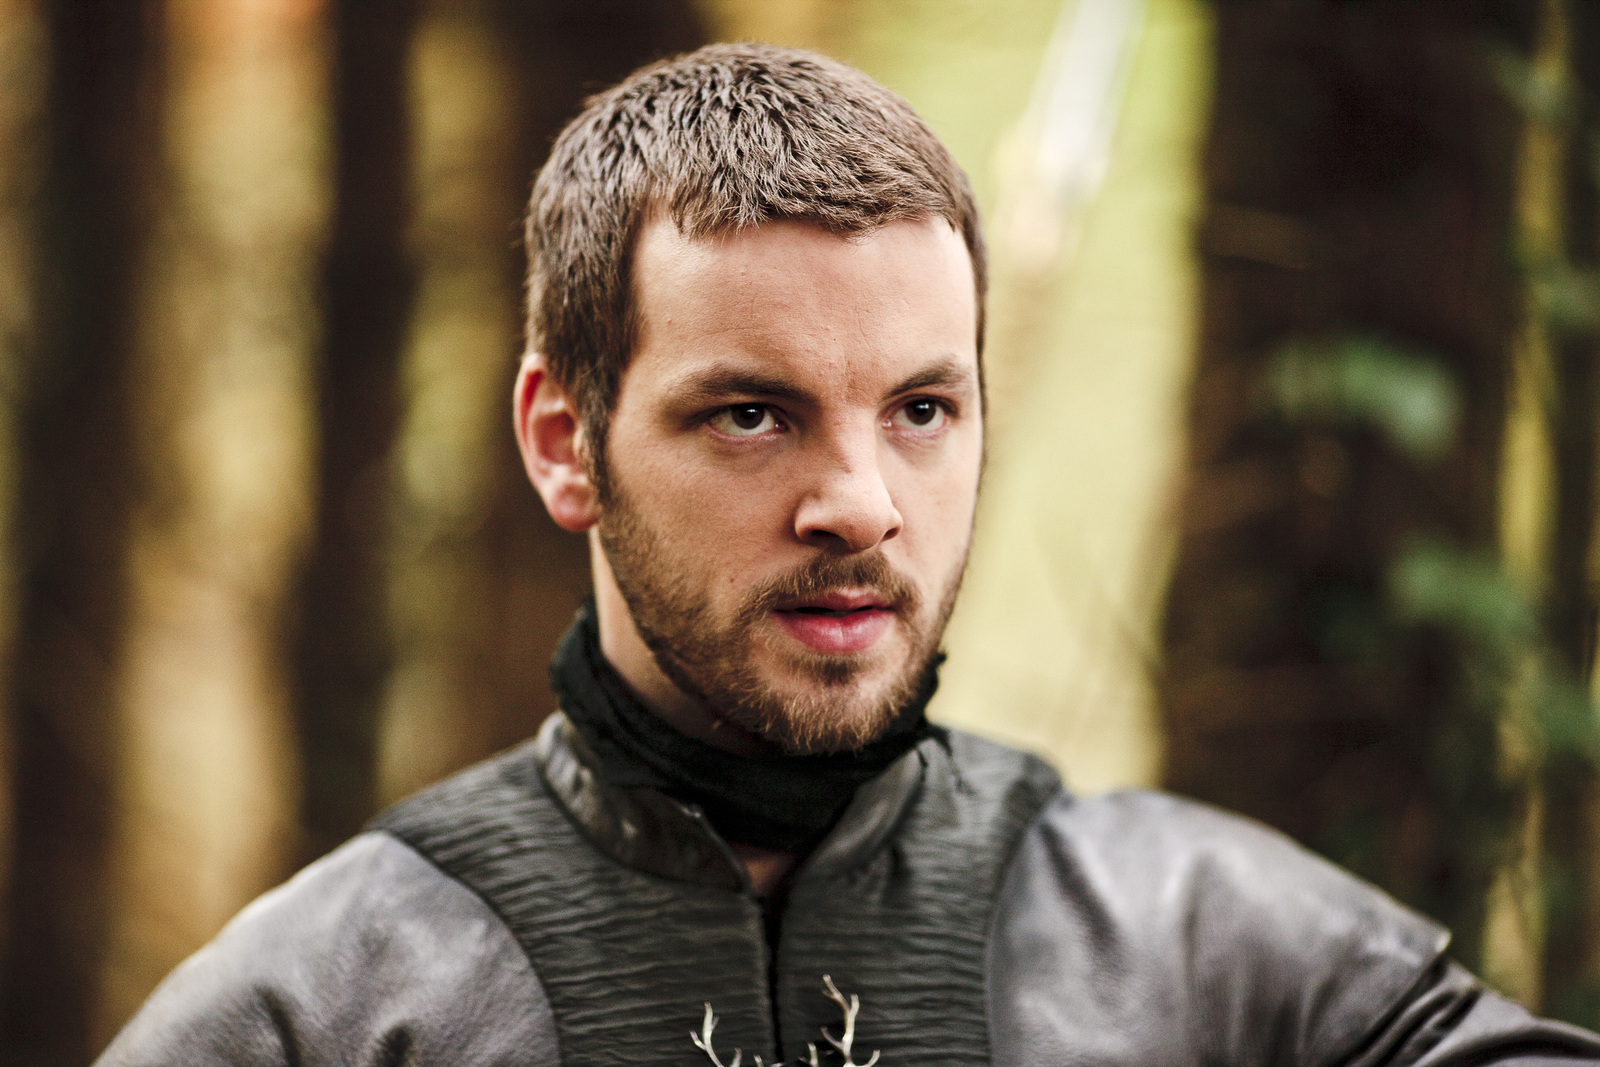 renly baratheon game of thrones france